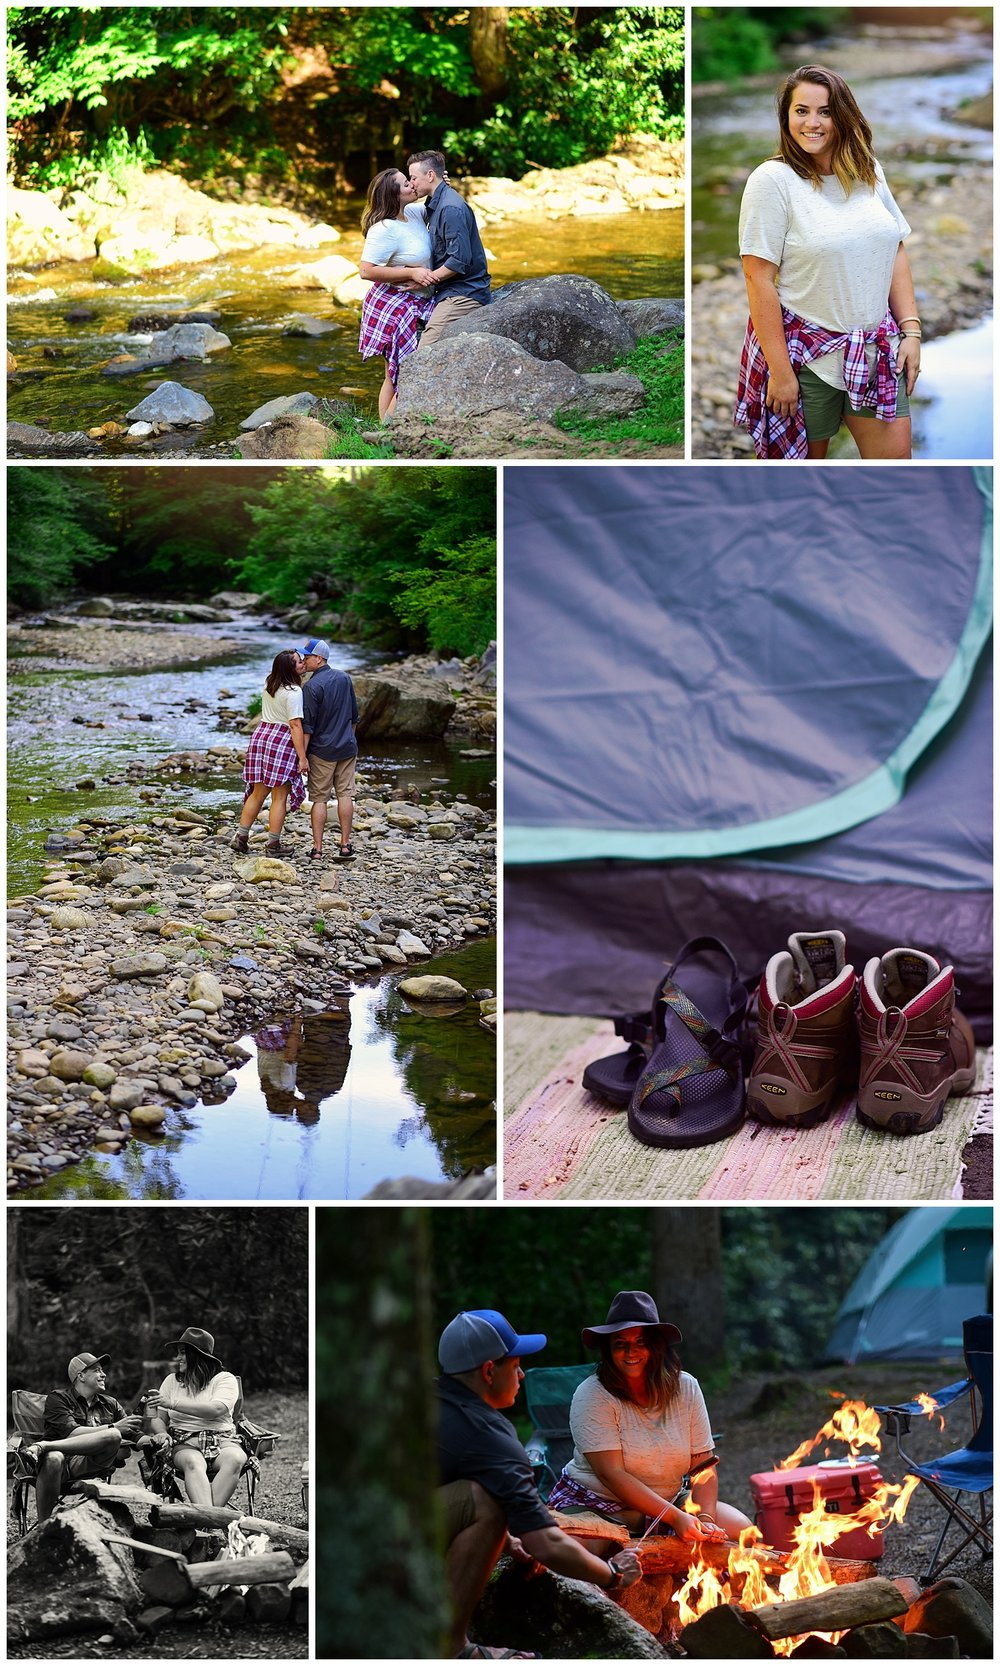 LGBTQ Camping Photos